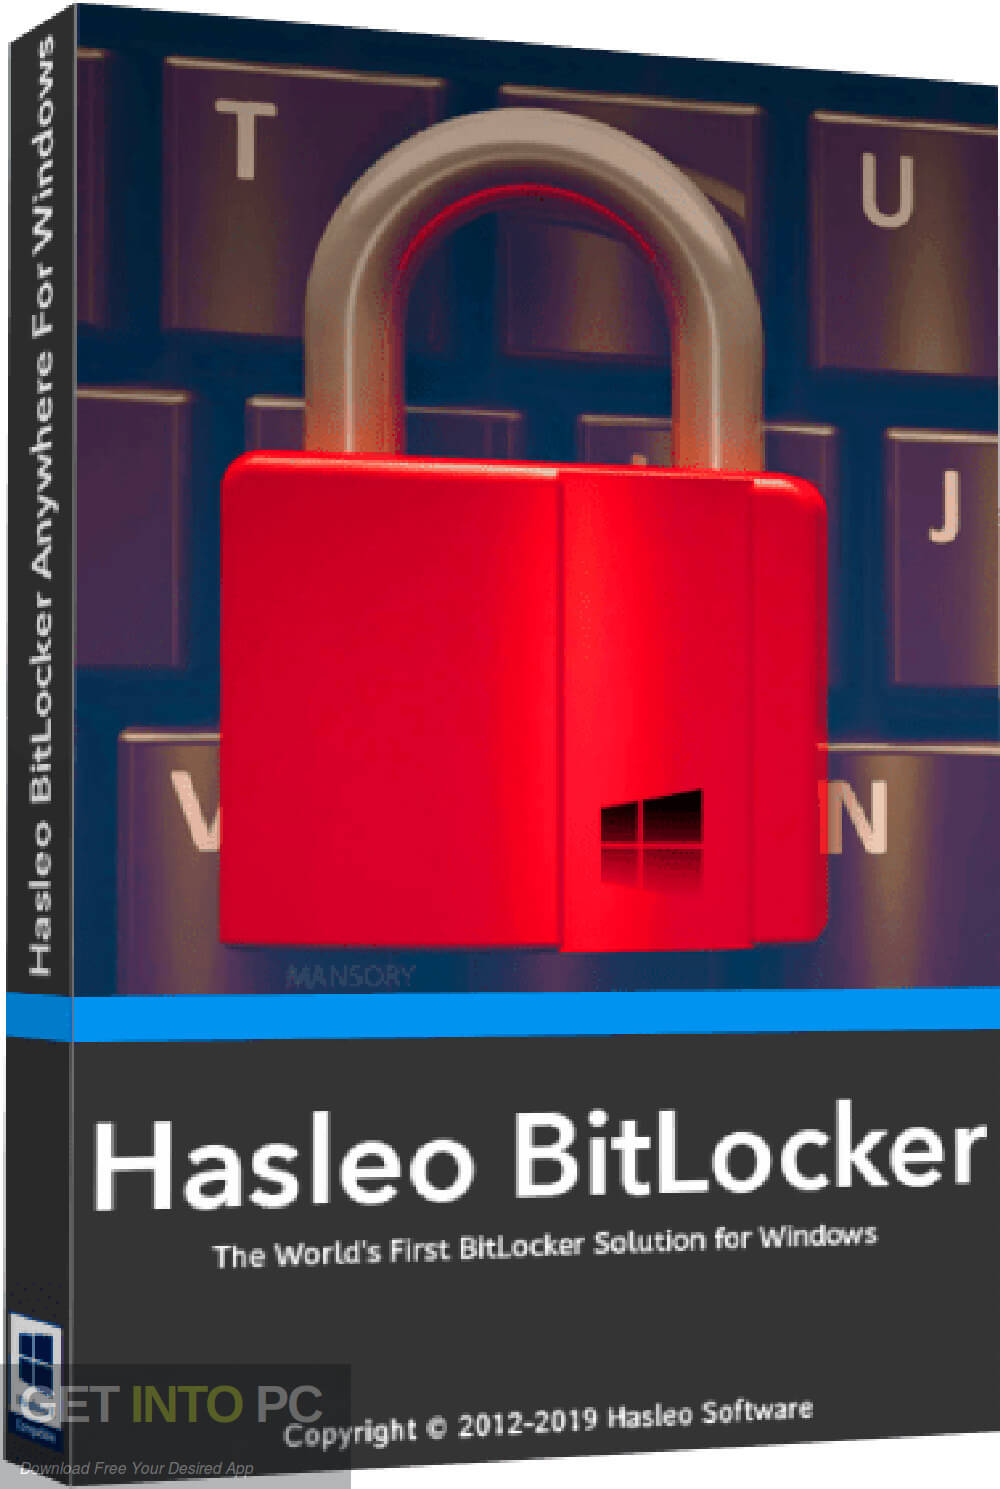 Hasleo BitLocker Anywhere 8.0 Crack 2021 With Licence Key Free Download